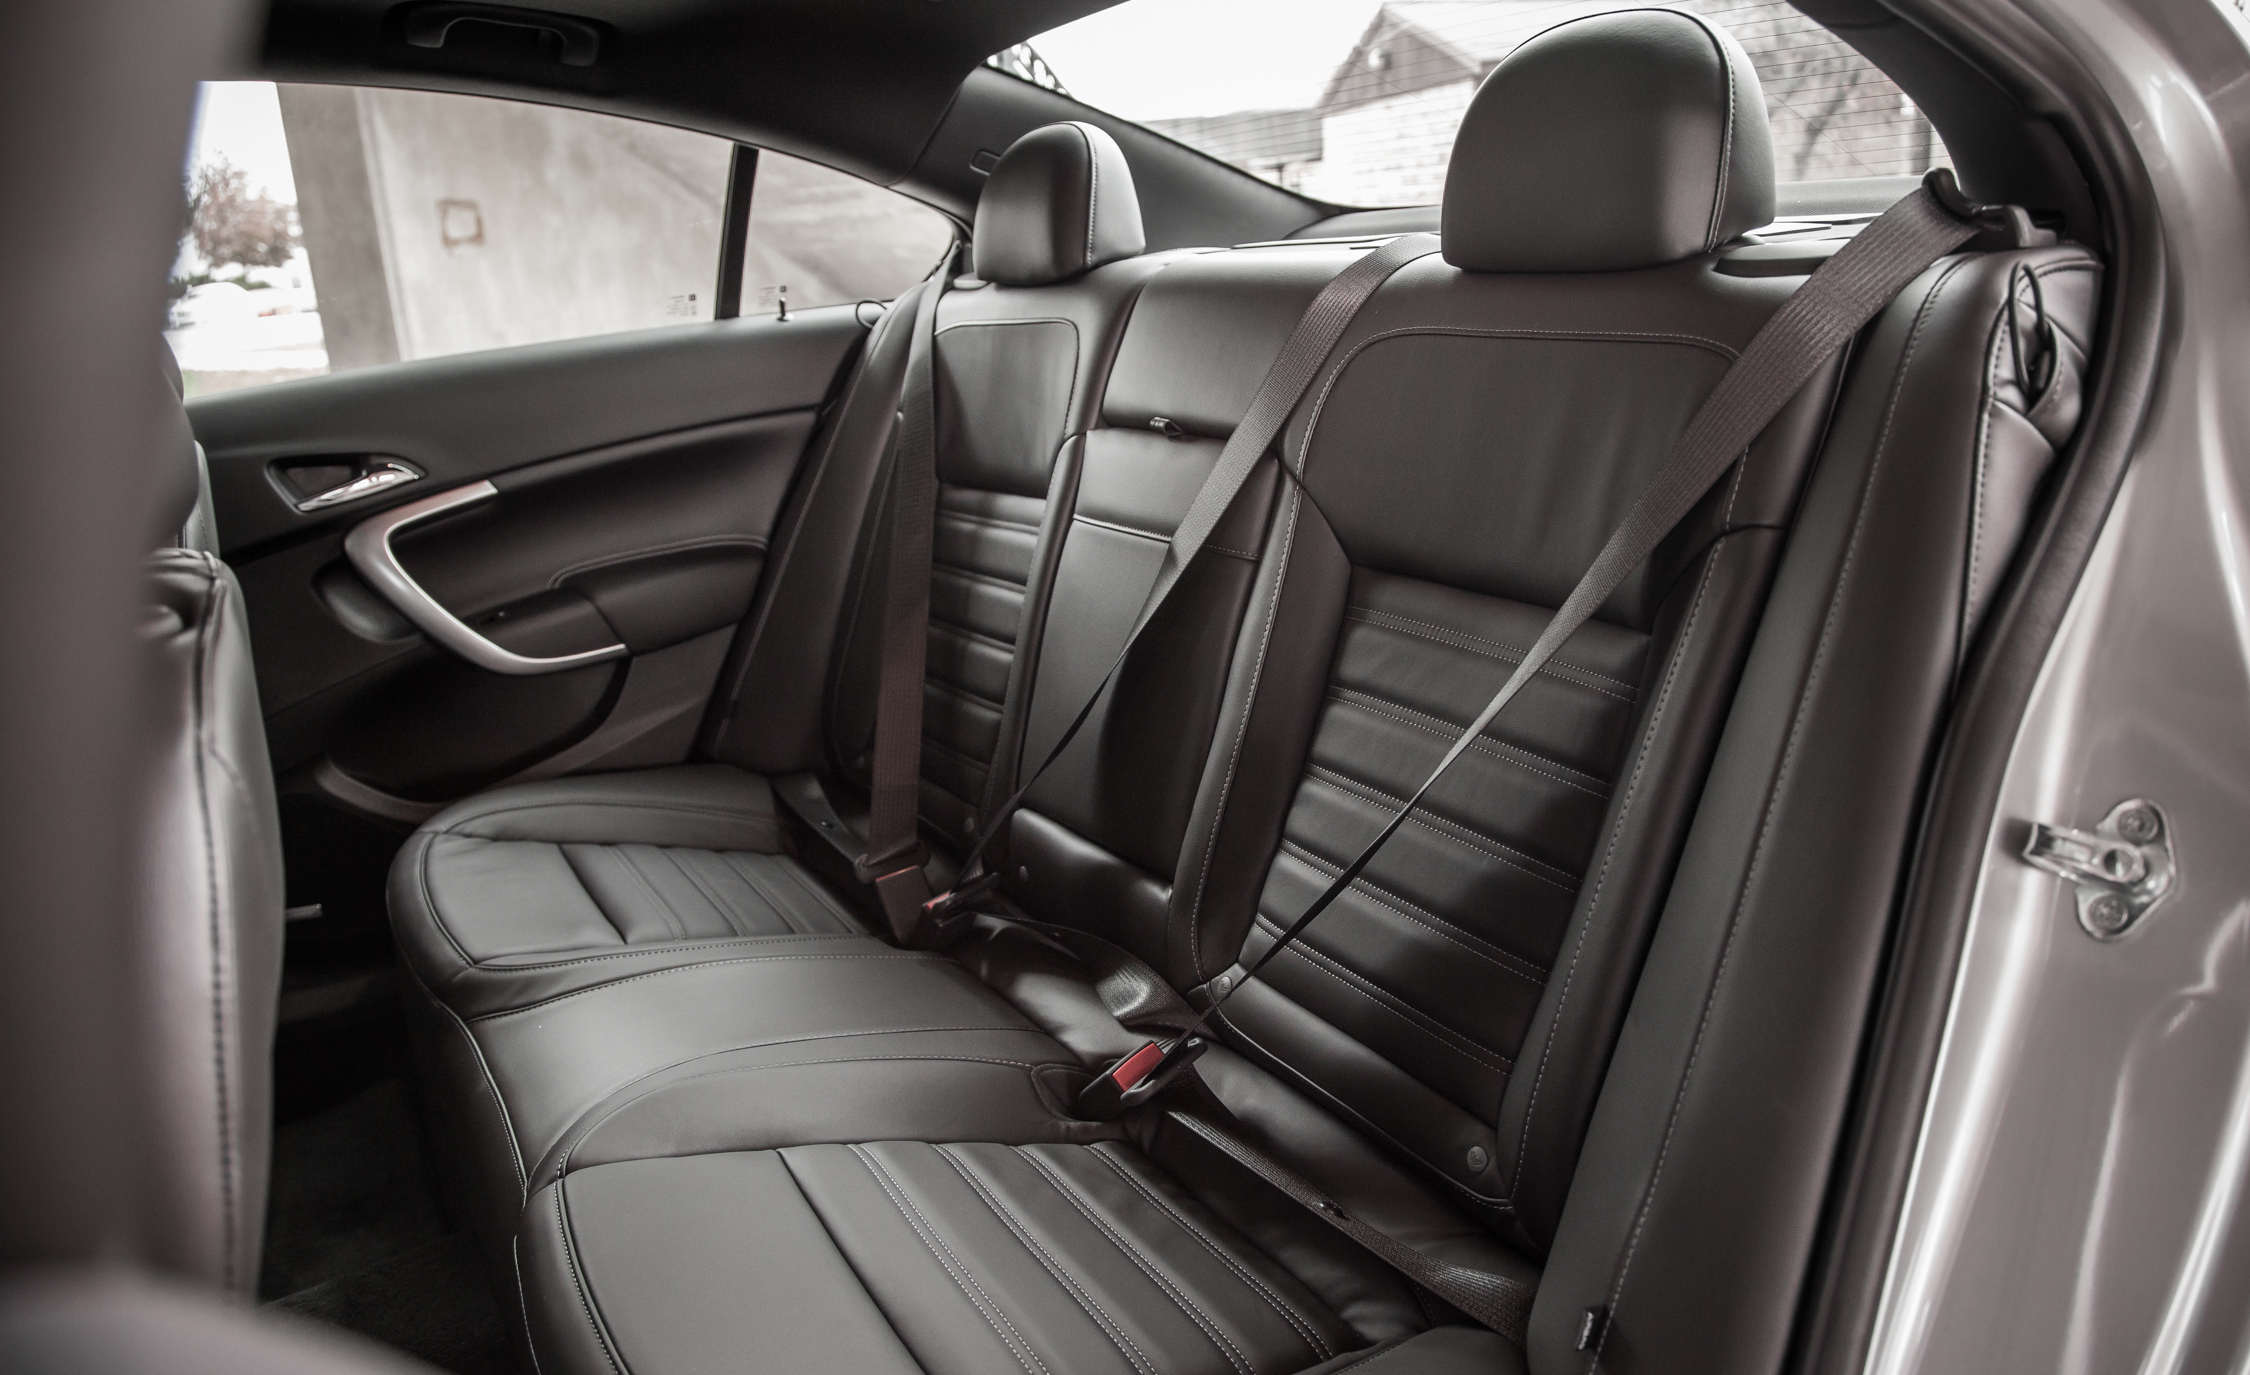 2014 Buick Regal GS Interior (View 6 of 30)